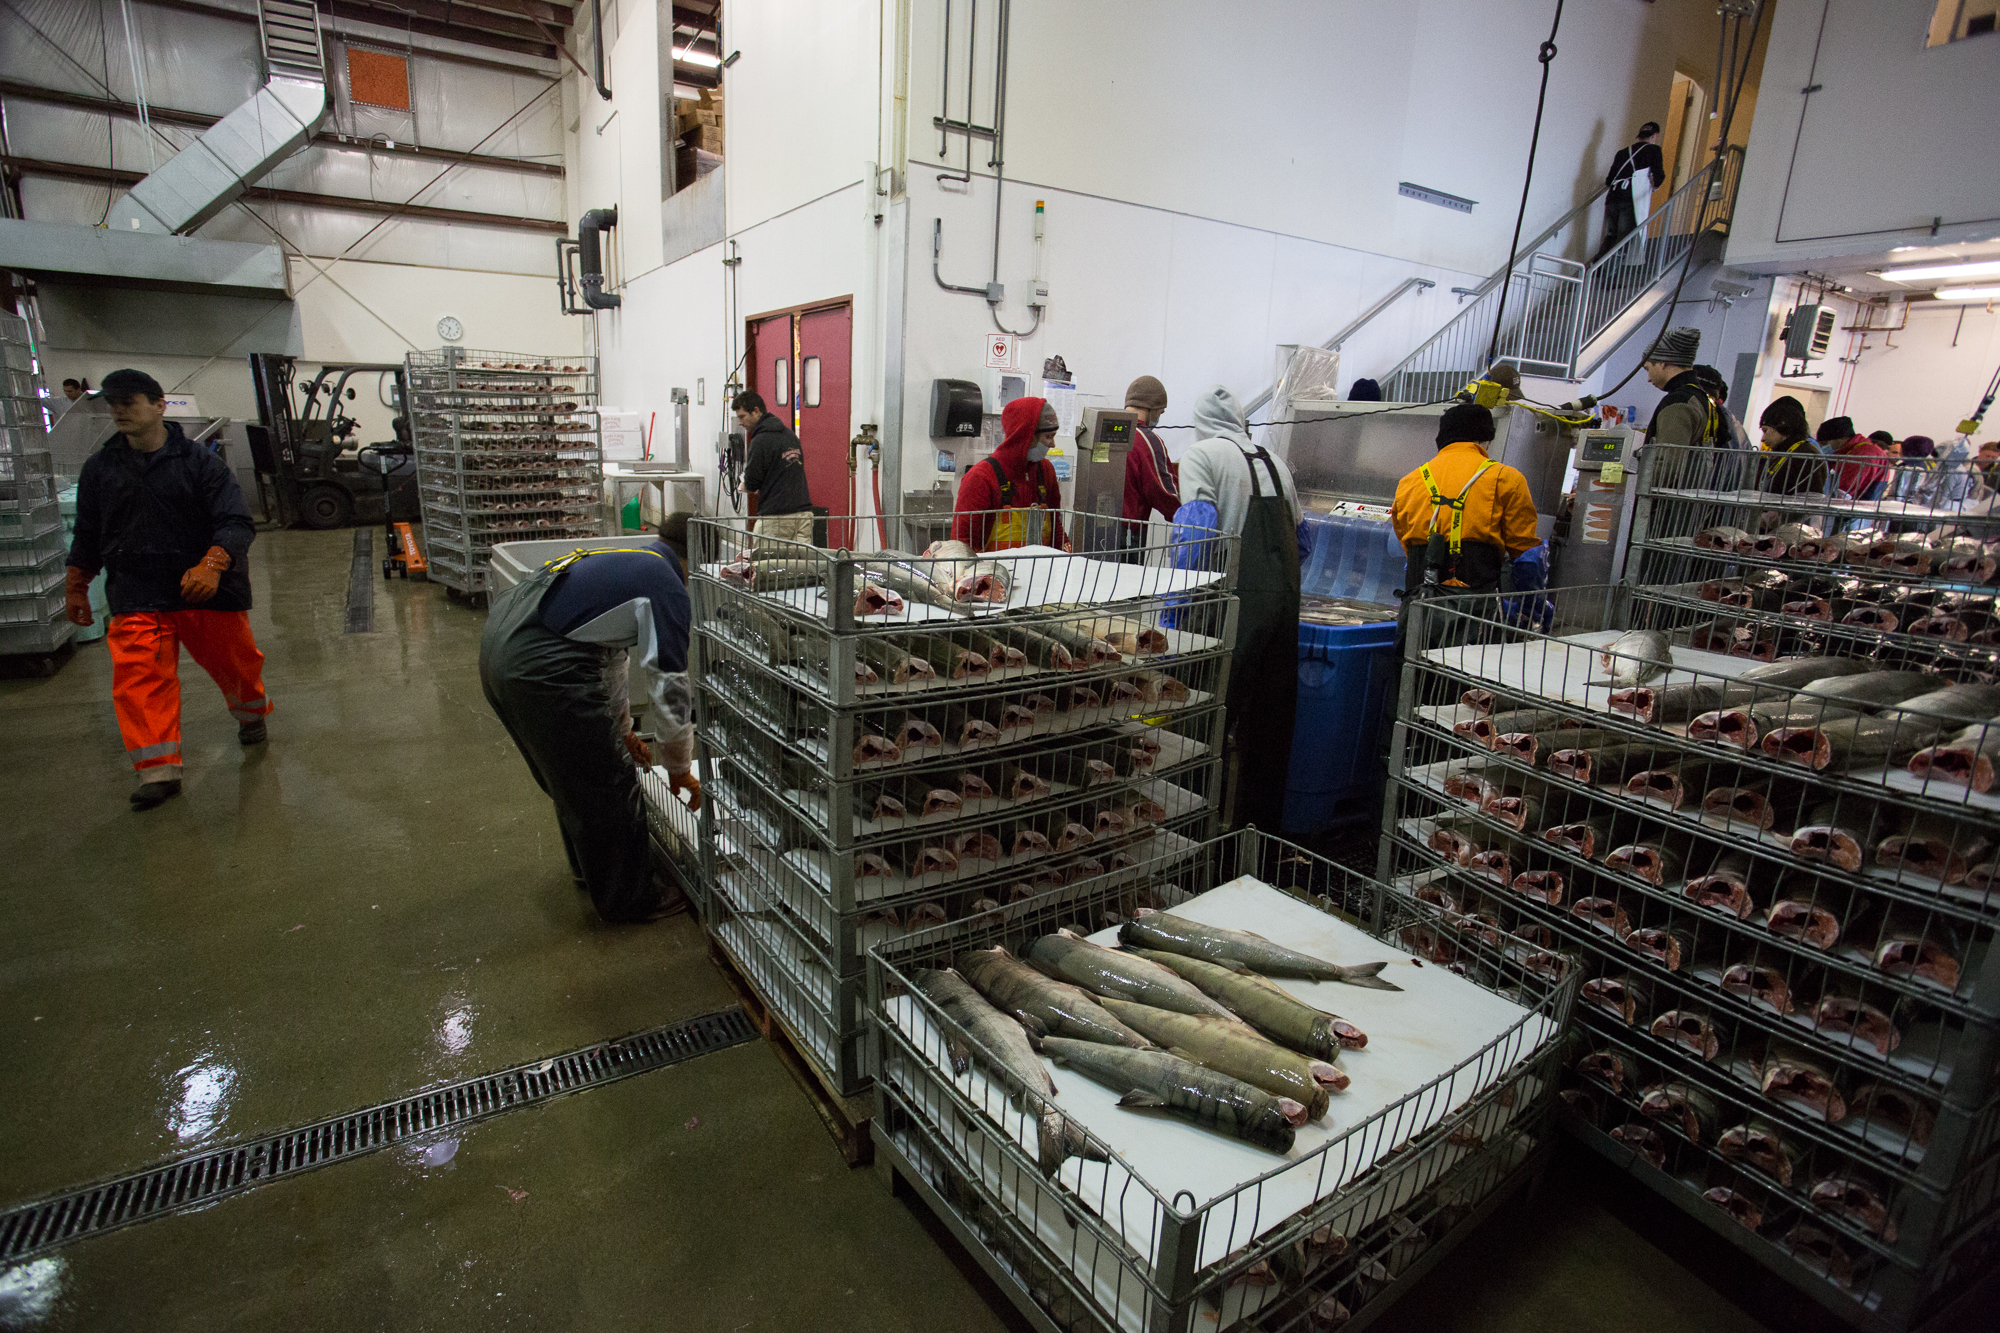 "(3/4) Dotting the shorelines of Alaska's southeast are numerous seafood processing facilities, like this one, where catches are delivered daily and quickly processed, packaged and shipped for sale. Here, processors work through a haul of chum salmon, which will be sold commercially as ""keta"" or ""silverbrite"" salmon (photo: Chad Shmukler)."